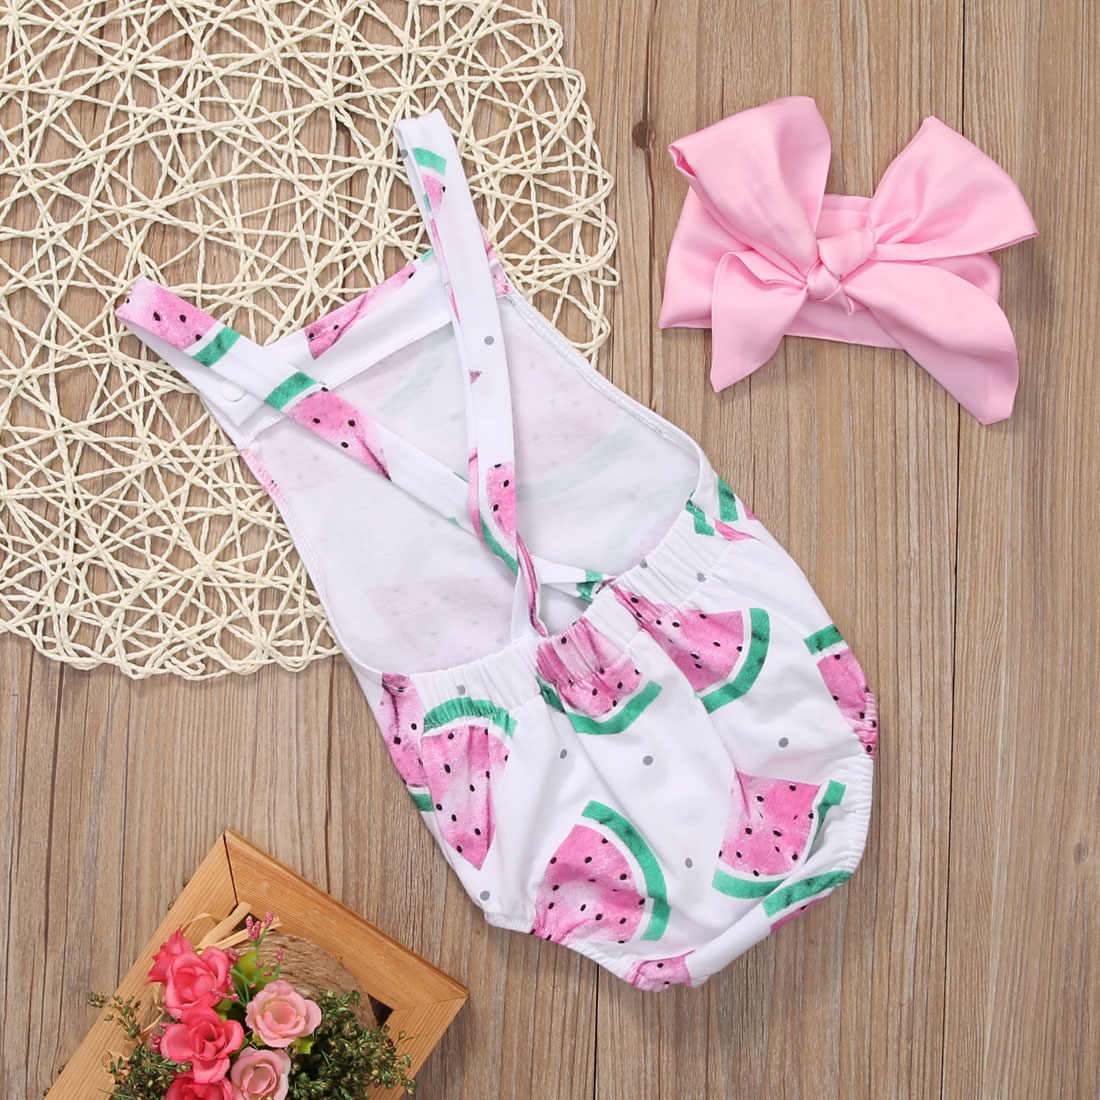 bdf8fa2c2b41 ... Summer Baby Girls Clothes Sleeveless Watermelon Infant Romper Backless  Halter Jumpsuit +Headband 2pcs Outfit Sunsuit ...